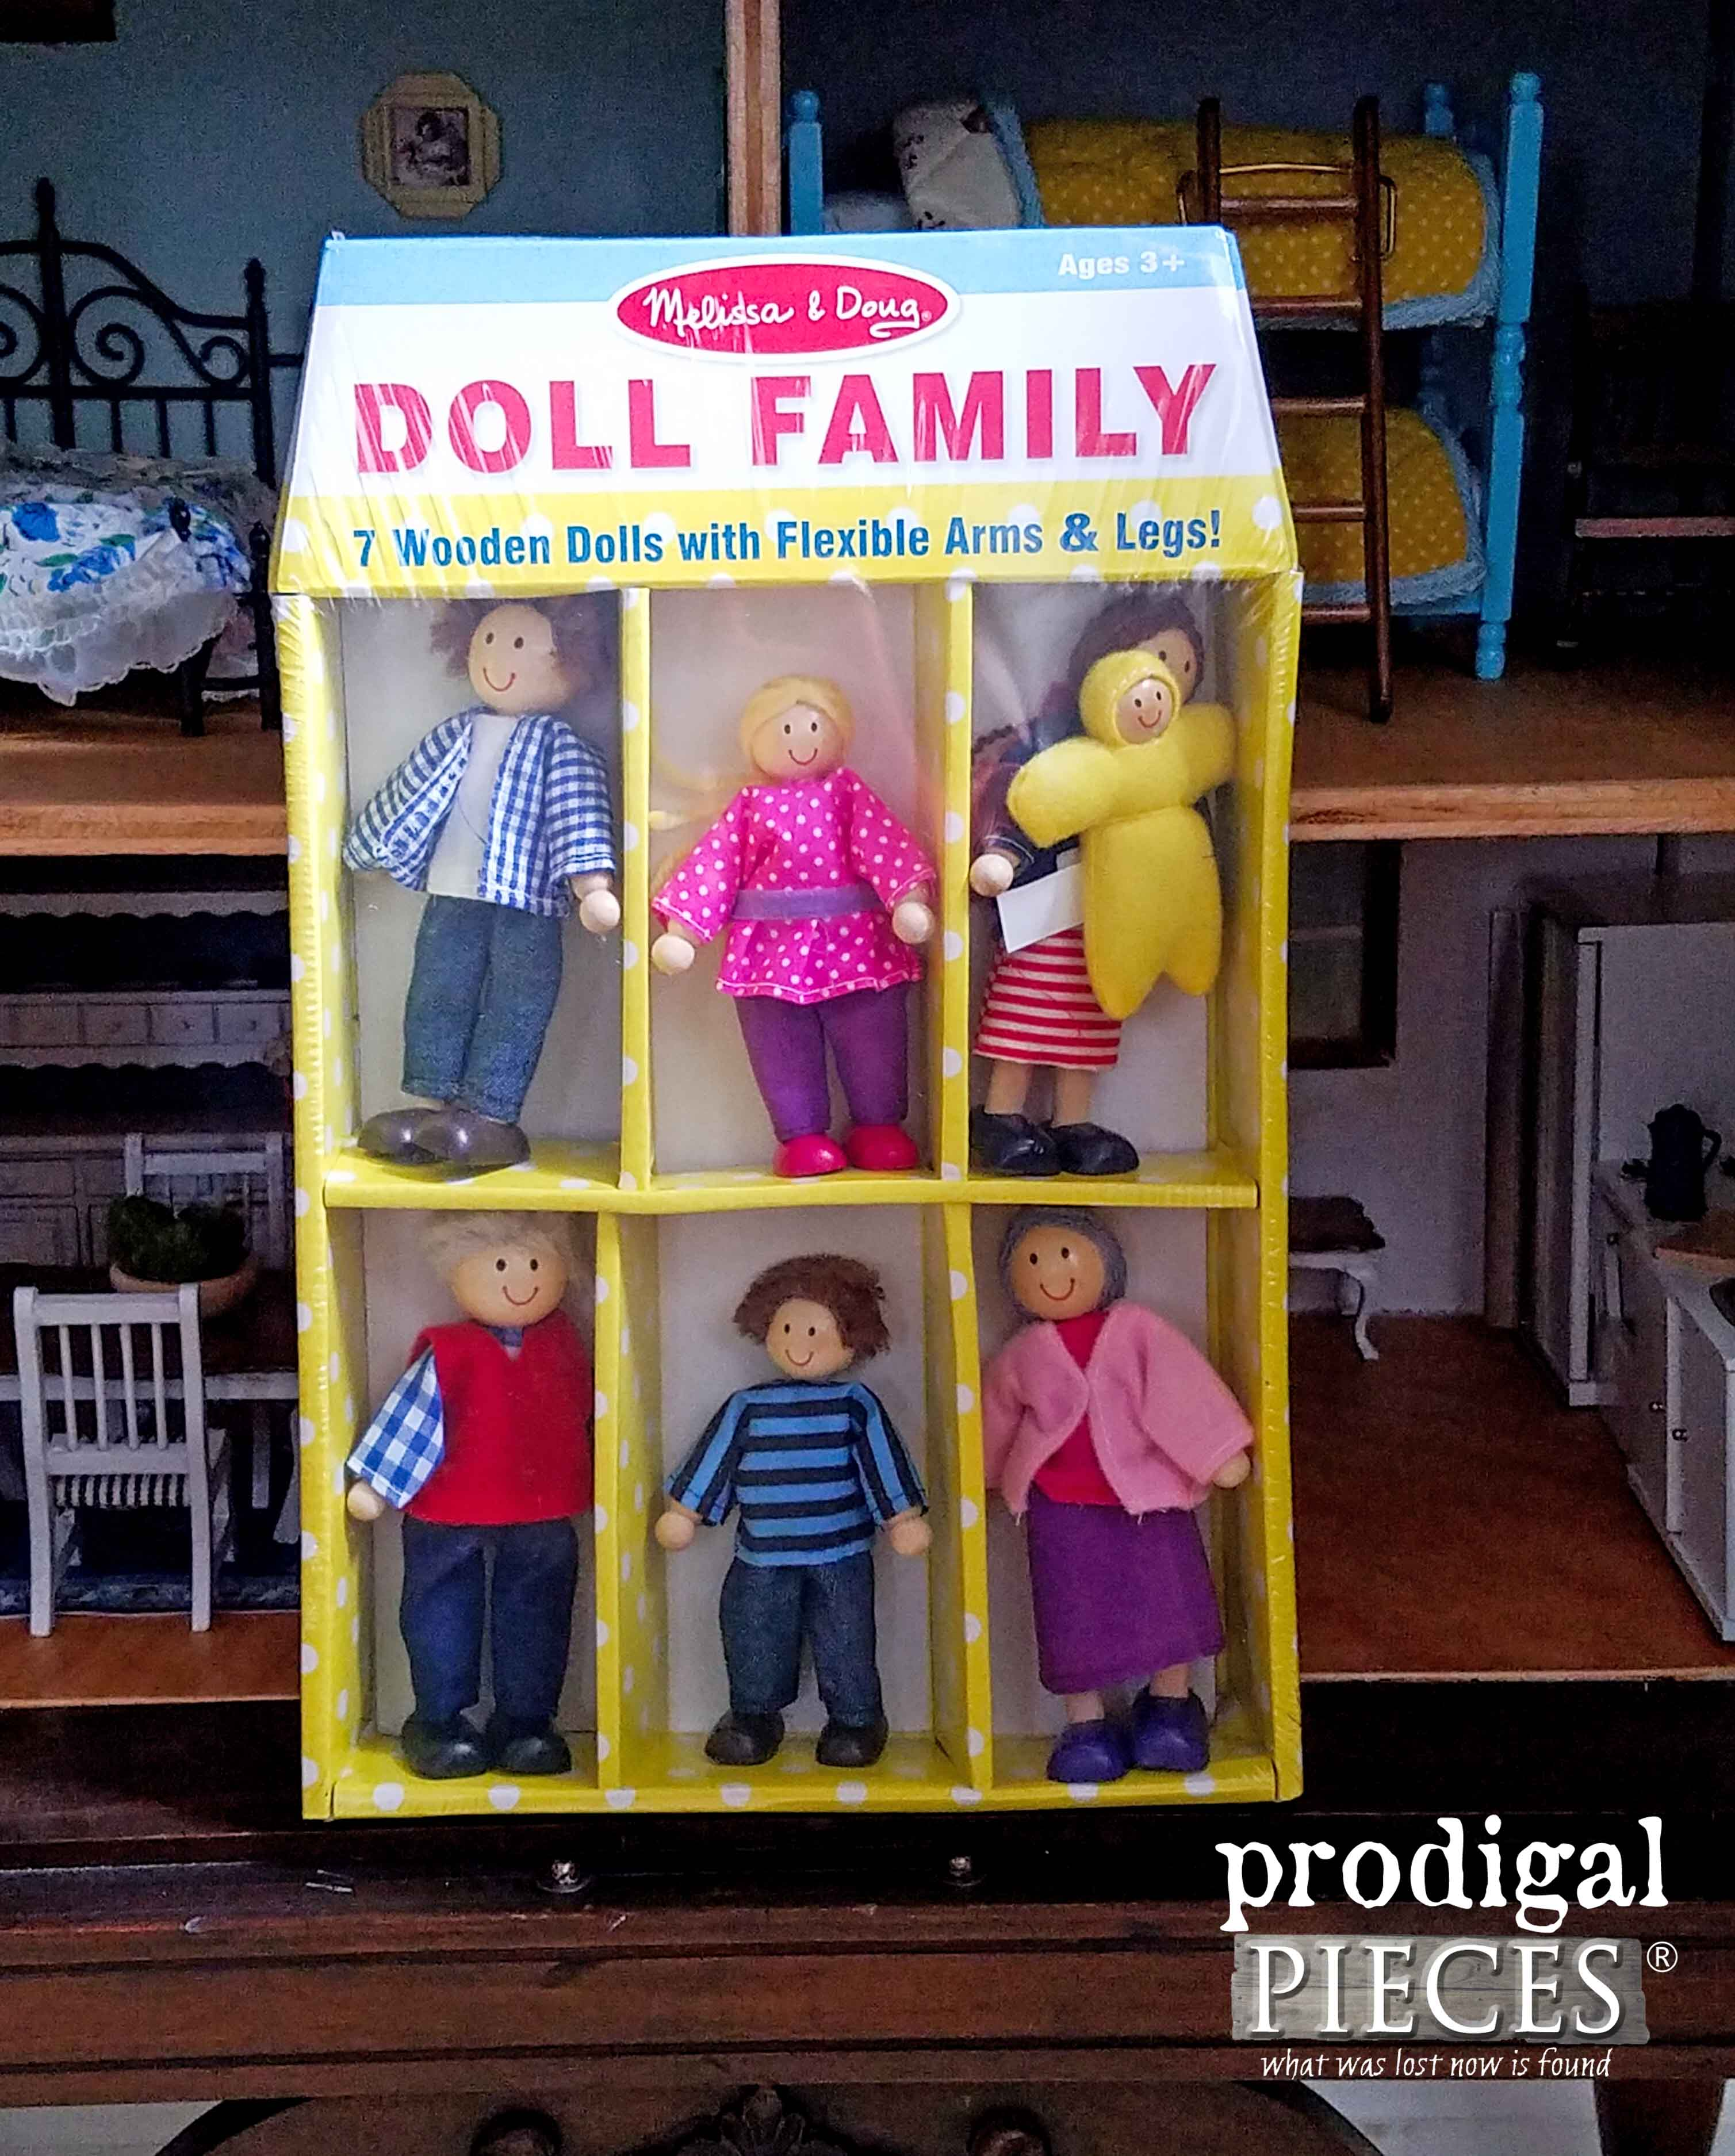 Melissa & Doug Wooden Dollhouse Family | Prodigal Pieces | www.prodigalpieces.com